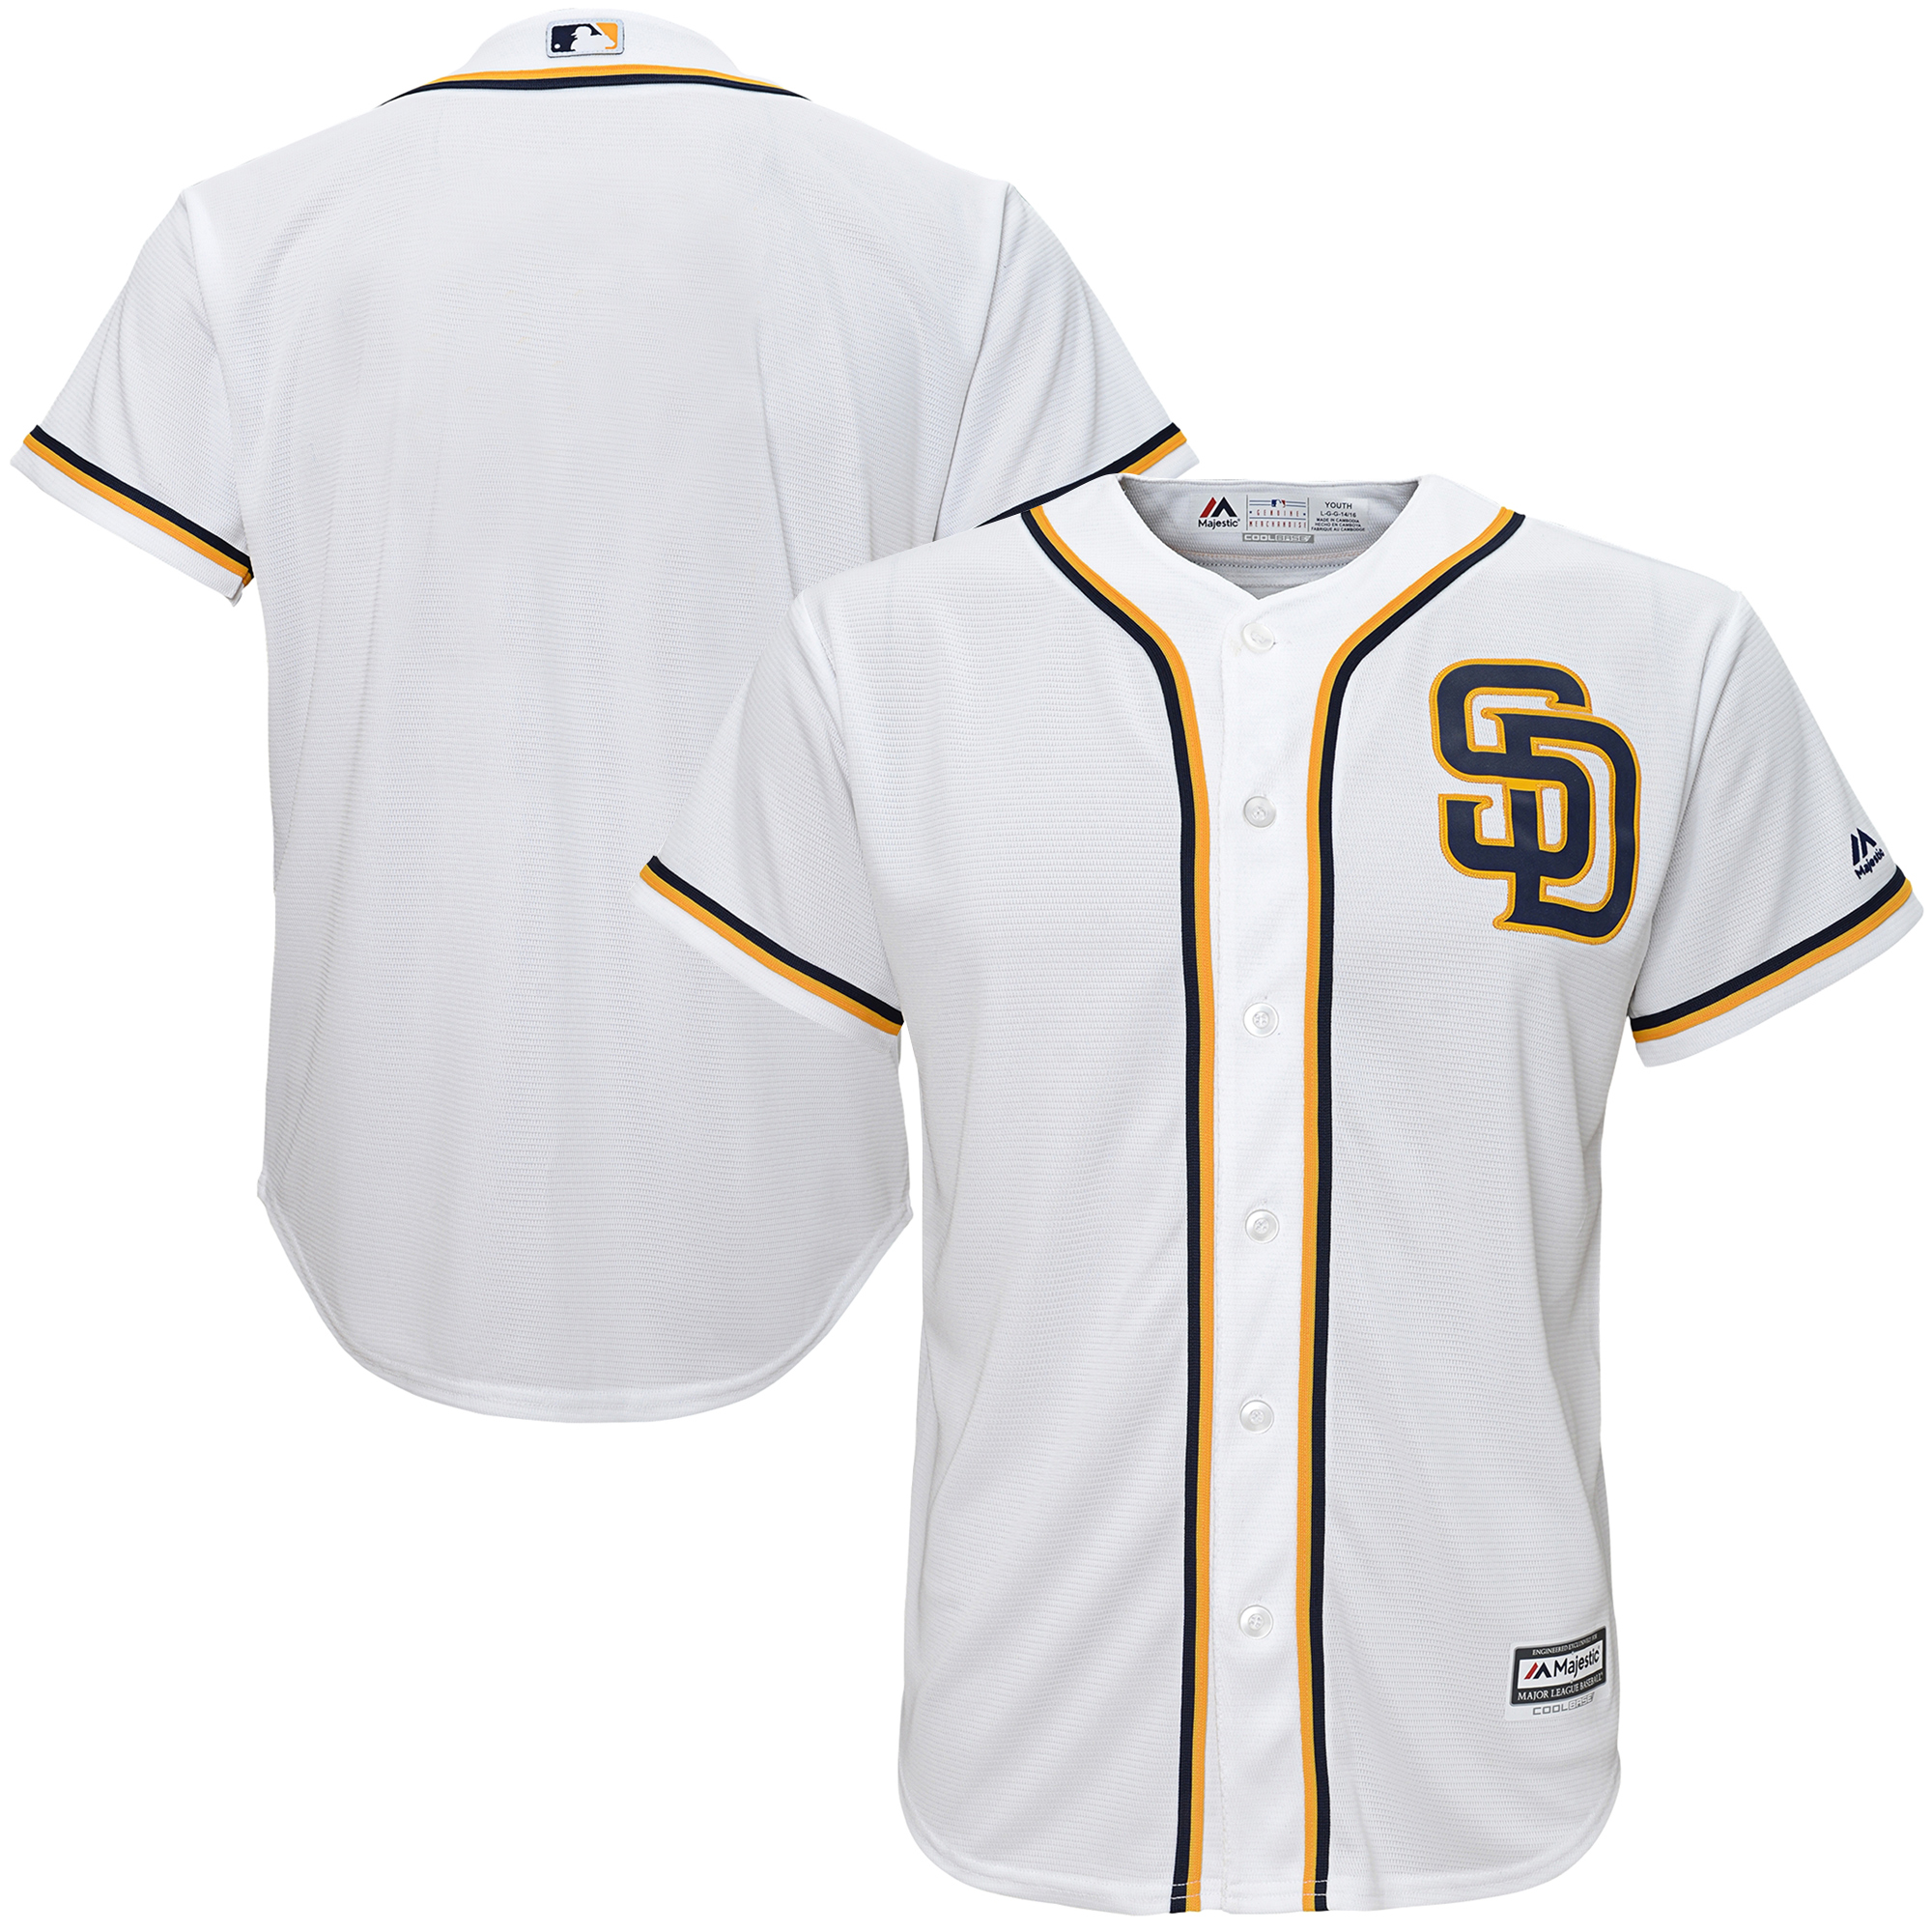 Youth Majestic White San Diego Padres Official Cool Base Jersey -